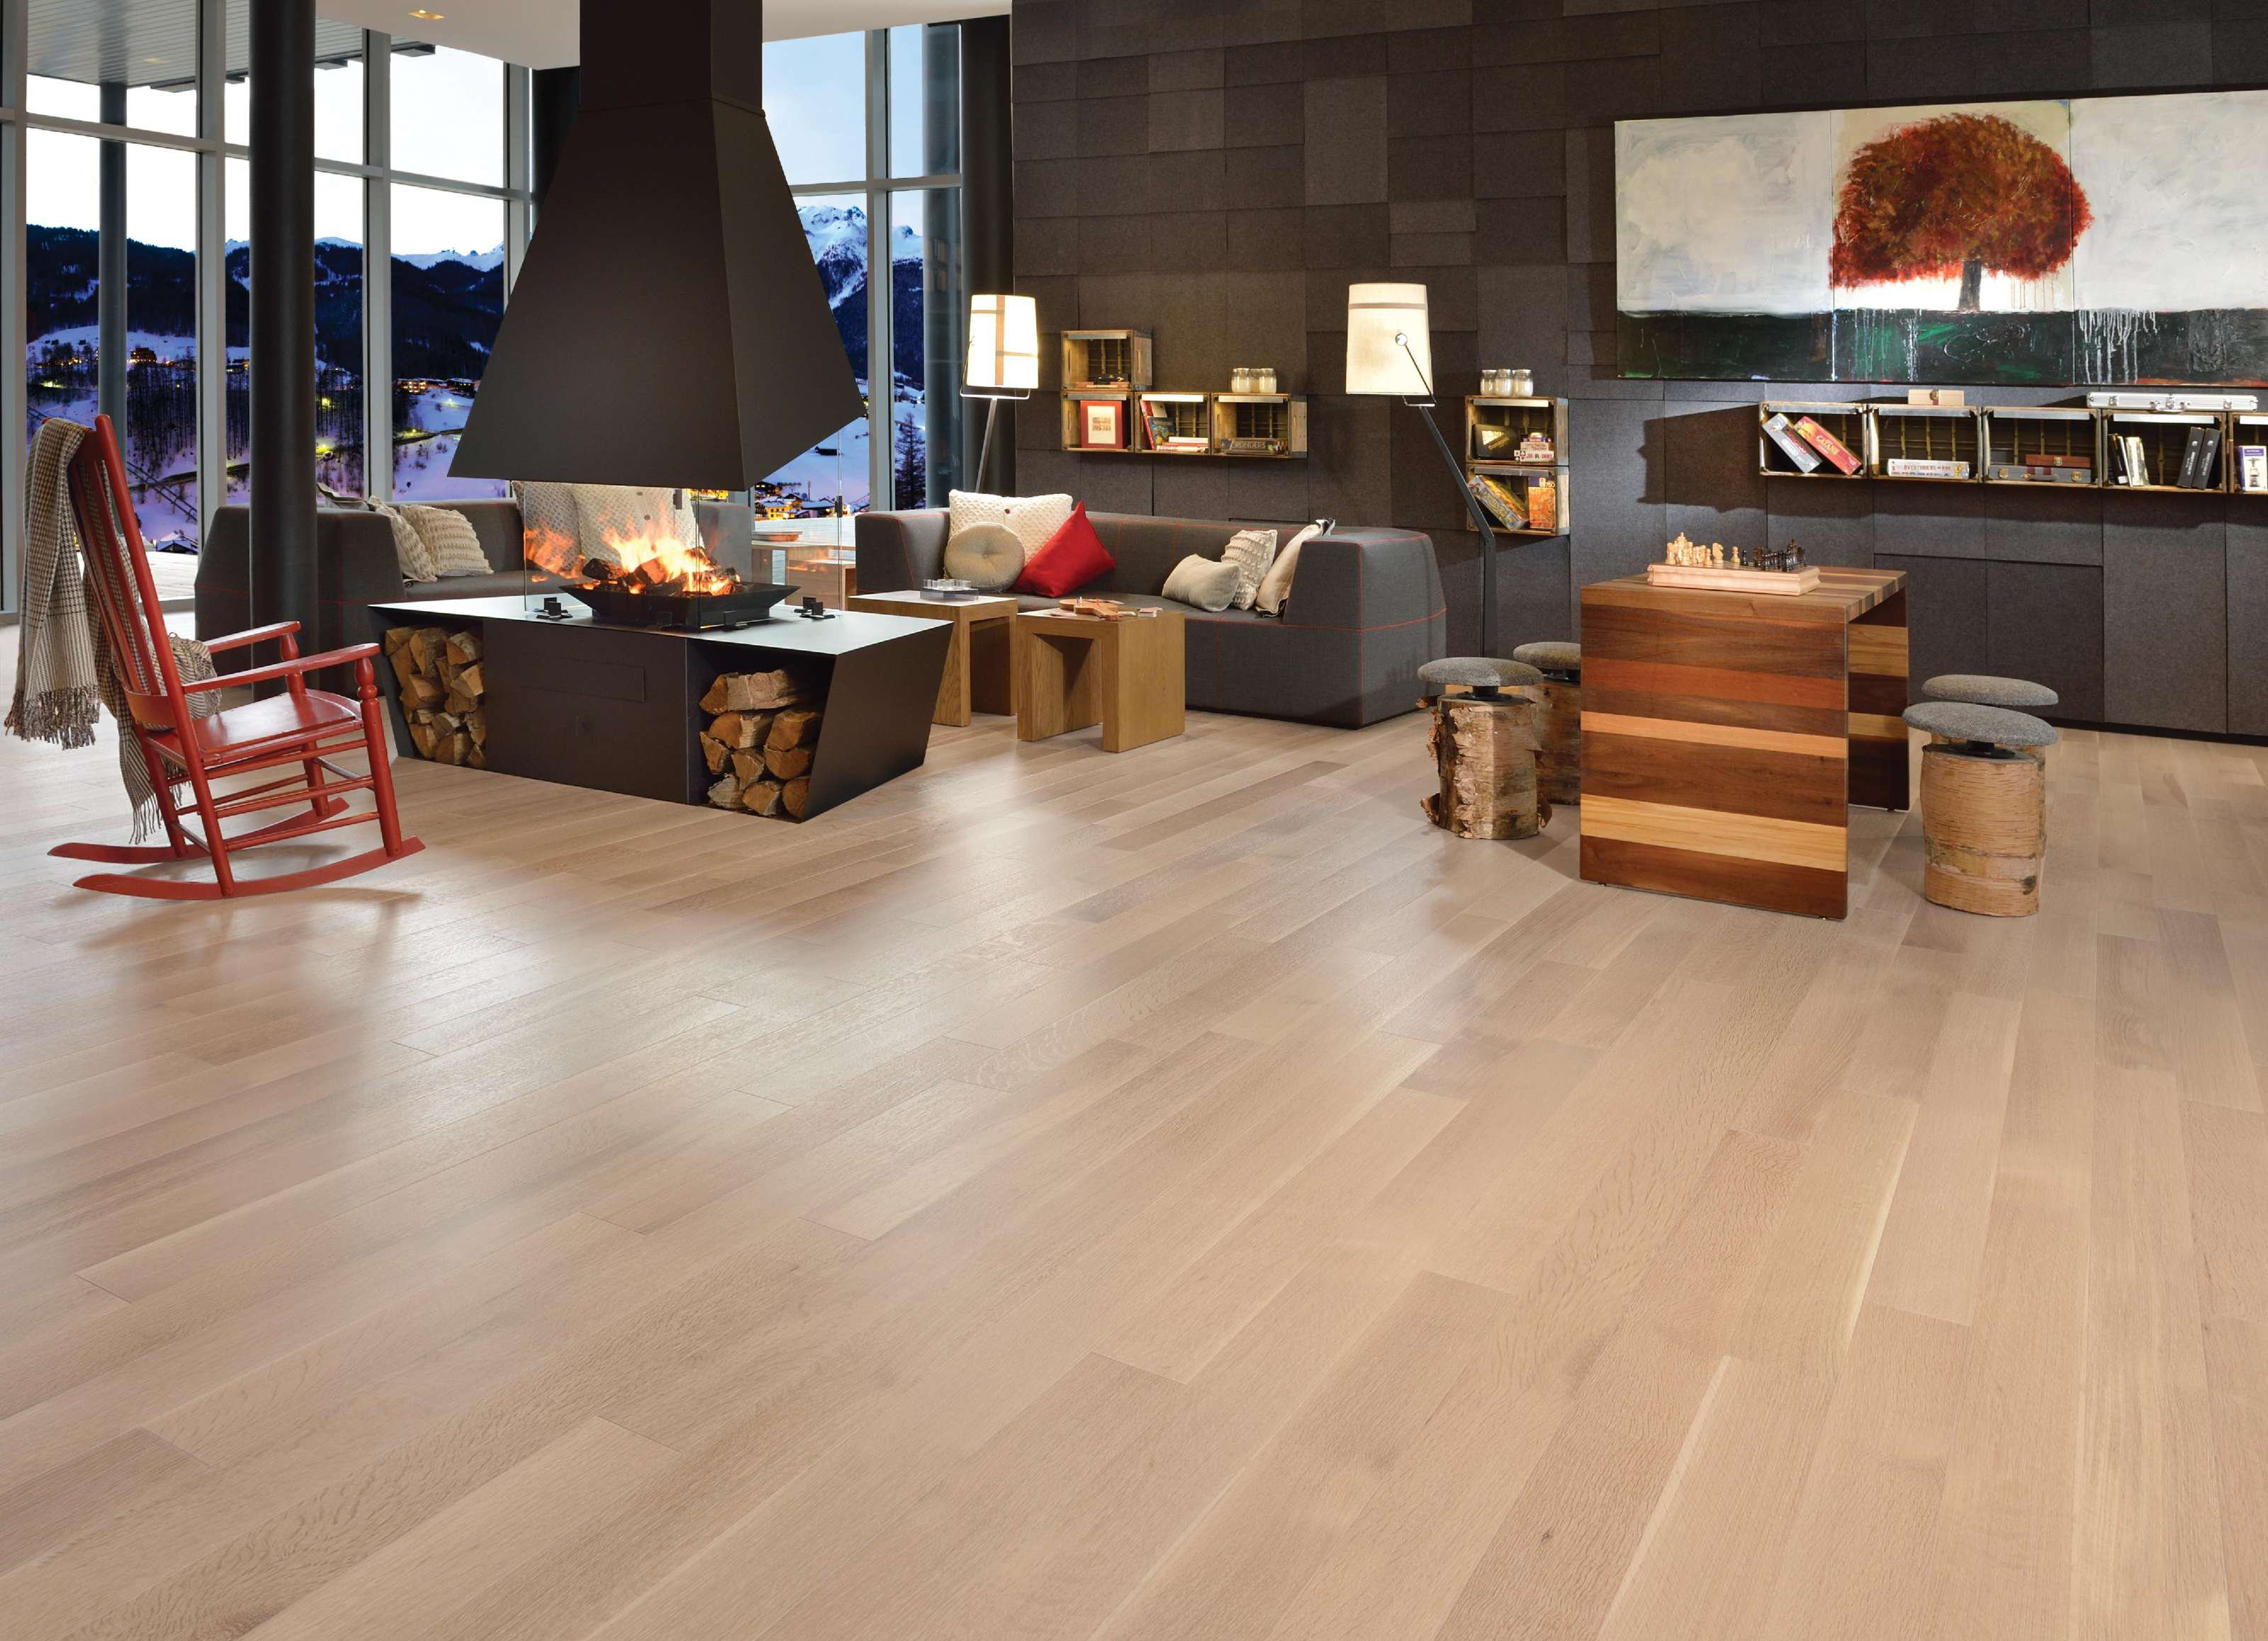 Alive white oak r q isla mirage hardwood floors for Mirage hardwood flooring